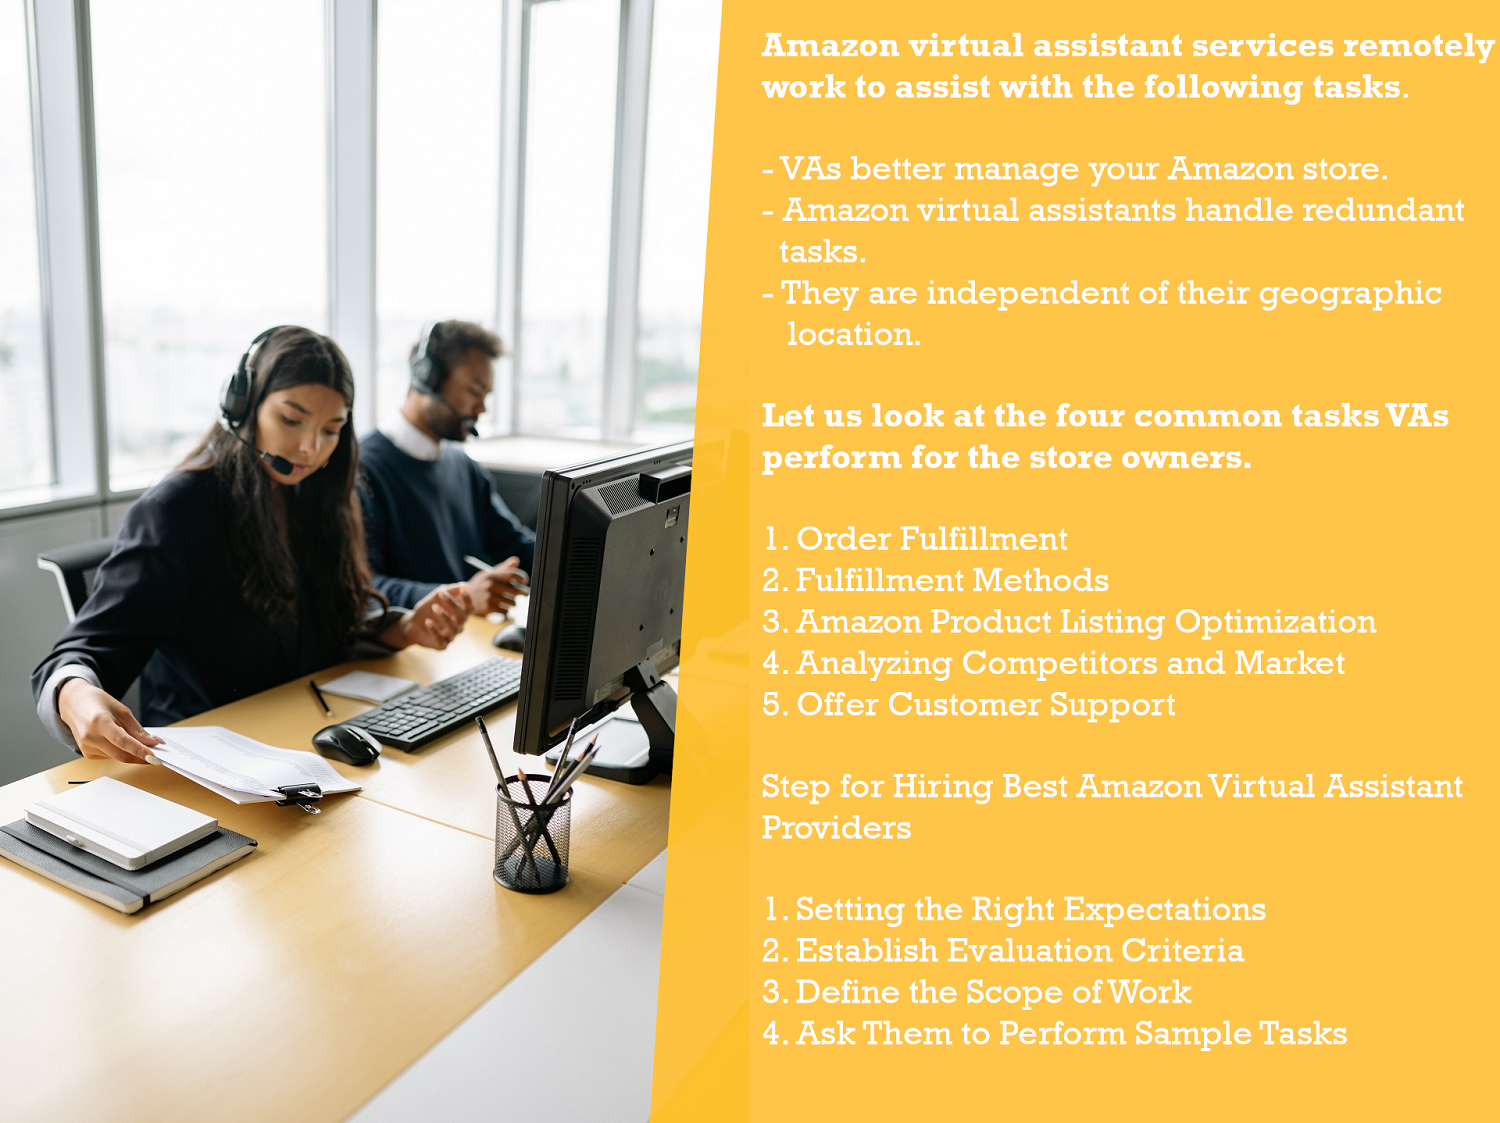 Introduction to Amazon Virtual Assistant Services